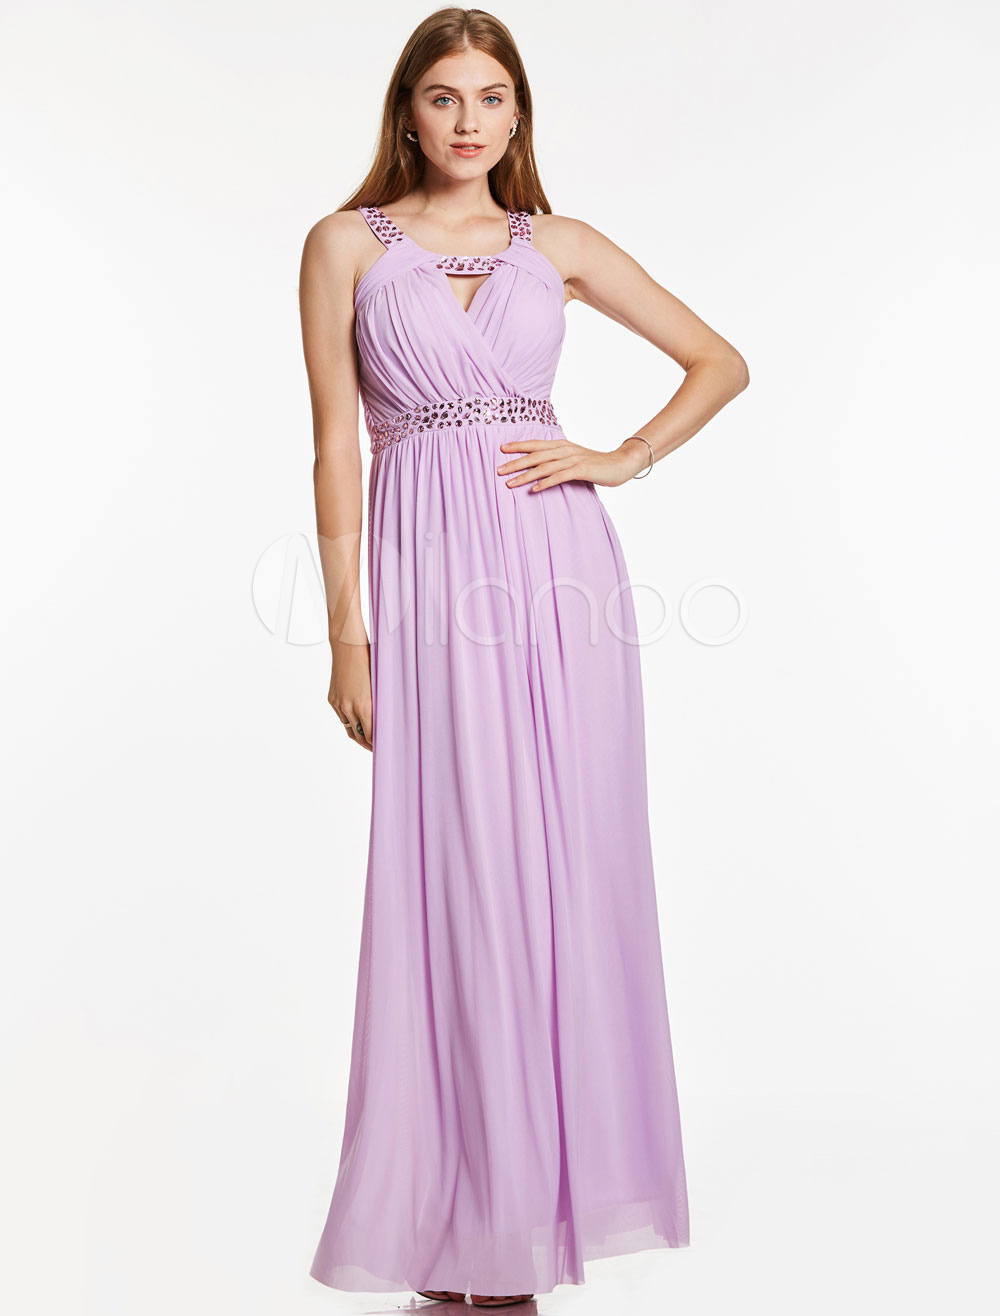 Lilac Prom Dresses Long Chiffon Beading Cutoff Floor Length Special Occasion Dress (Wedding Cheap Party Dress) photo